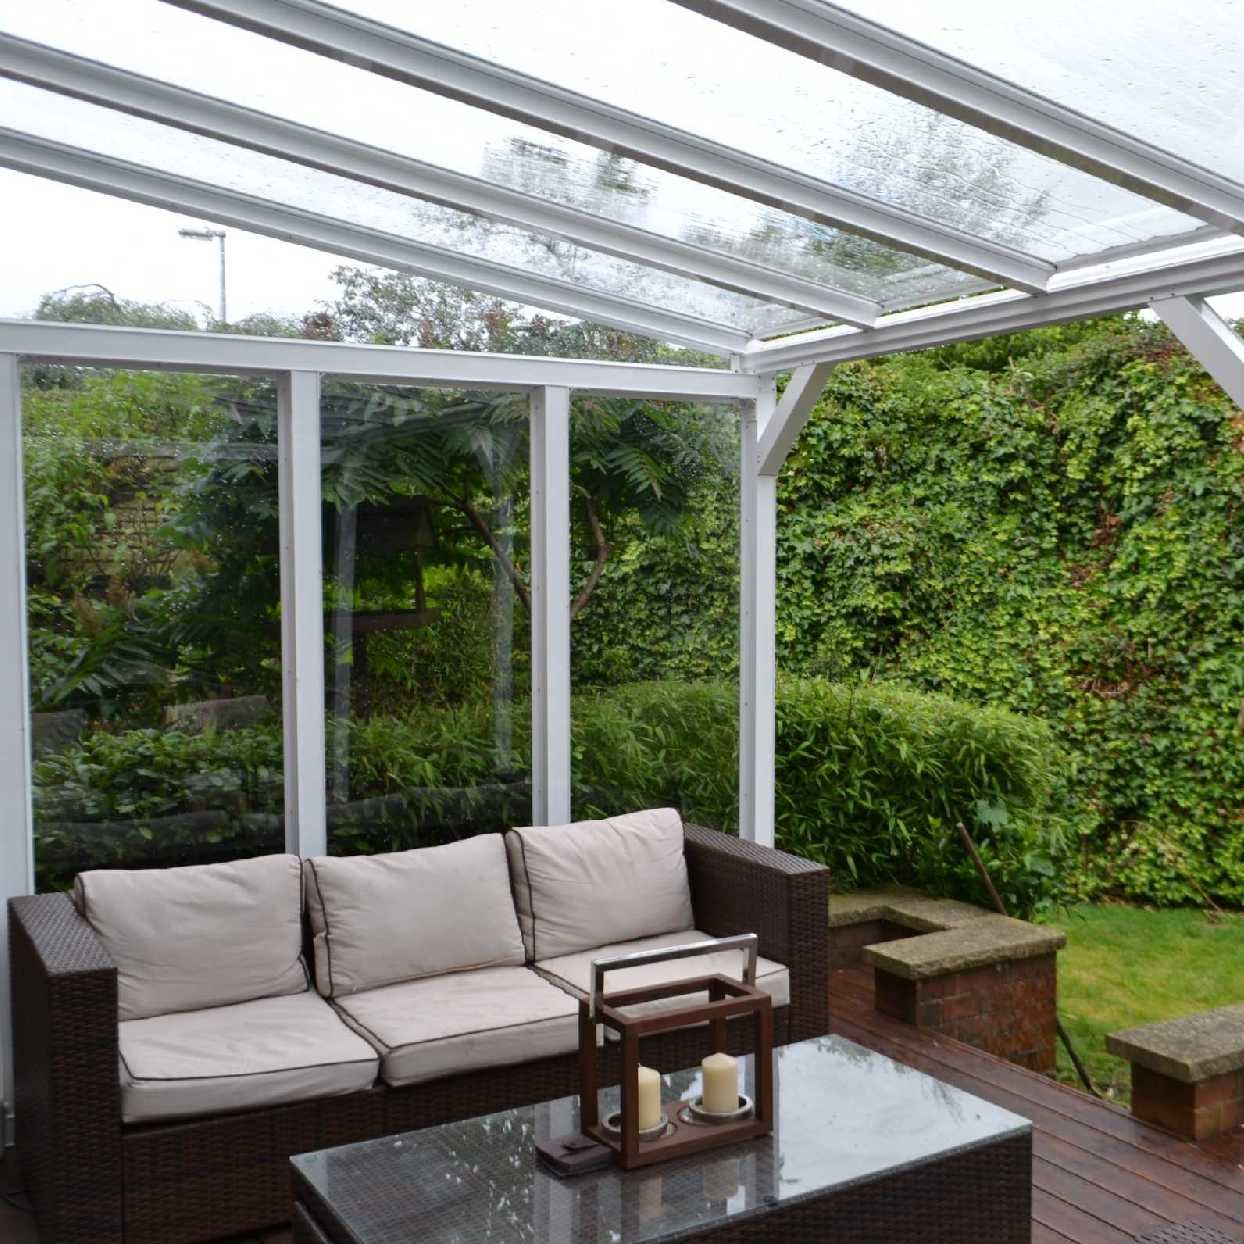 Omega Smart White Lean-To Canopy UNGLAZED for 6mm Glazing - 2.8m (W) x 2.5m (P), (2) Supporting Posts